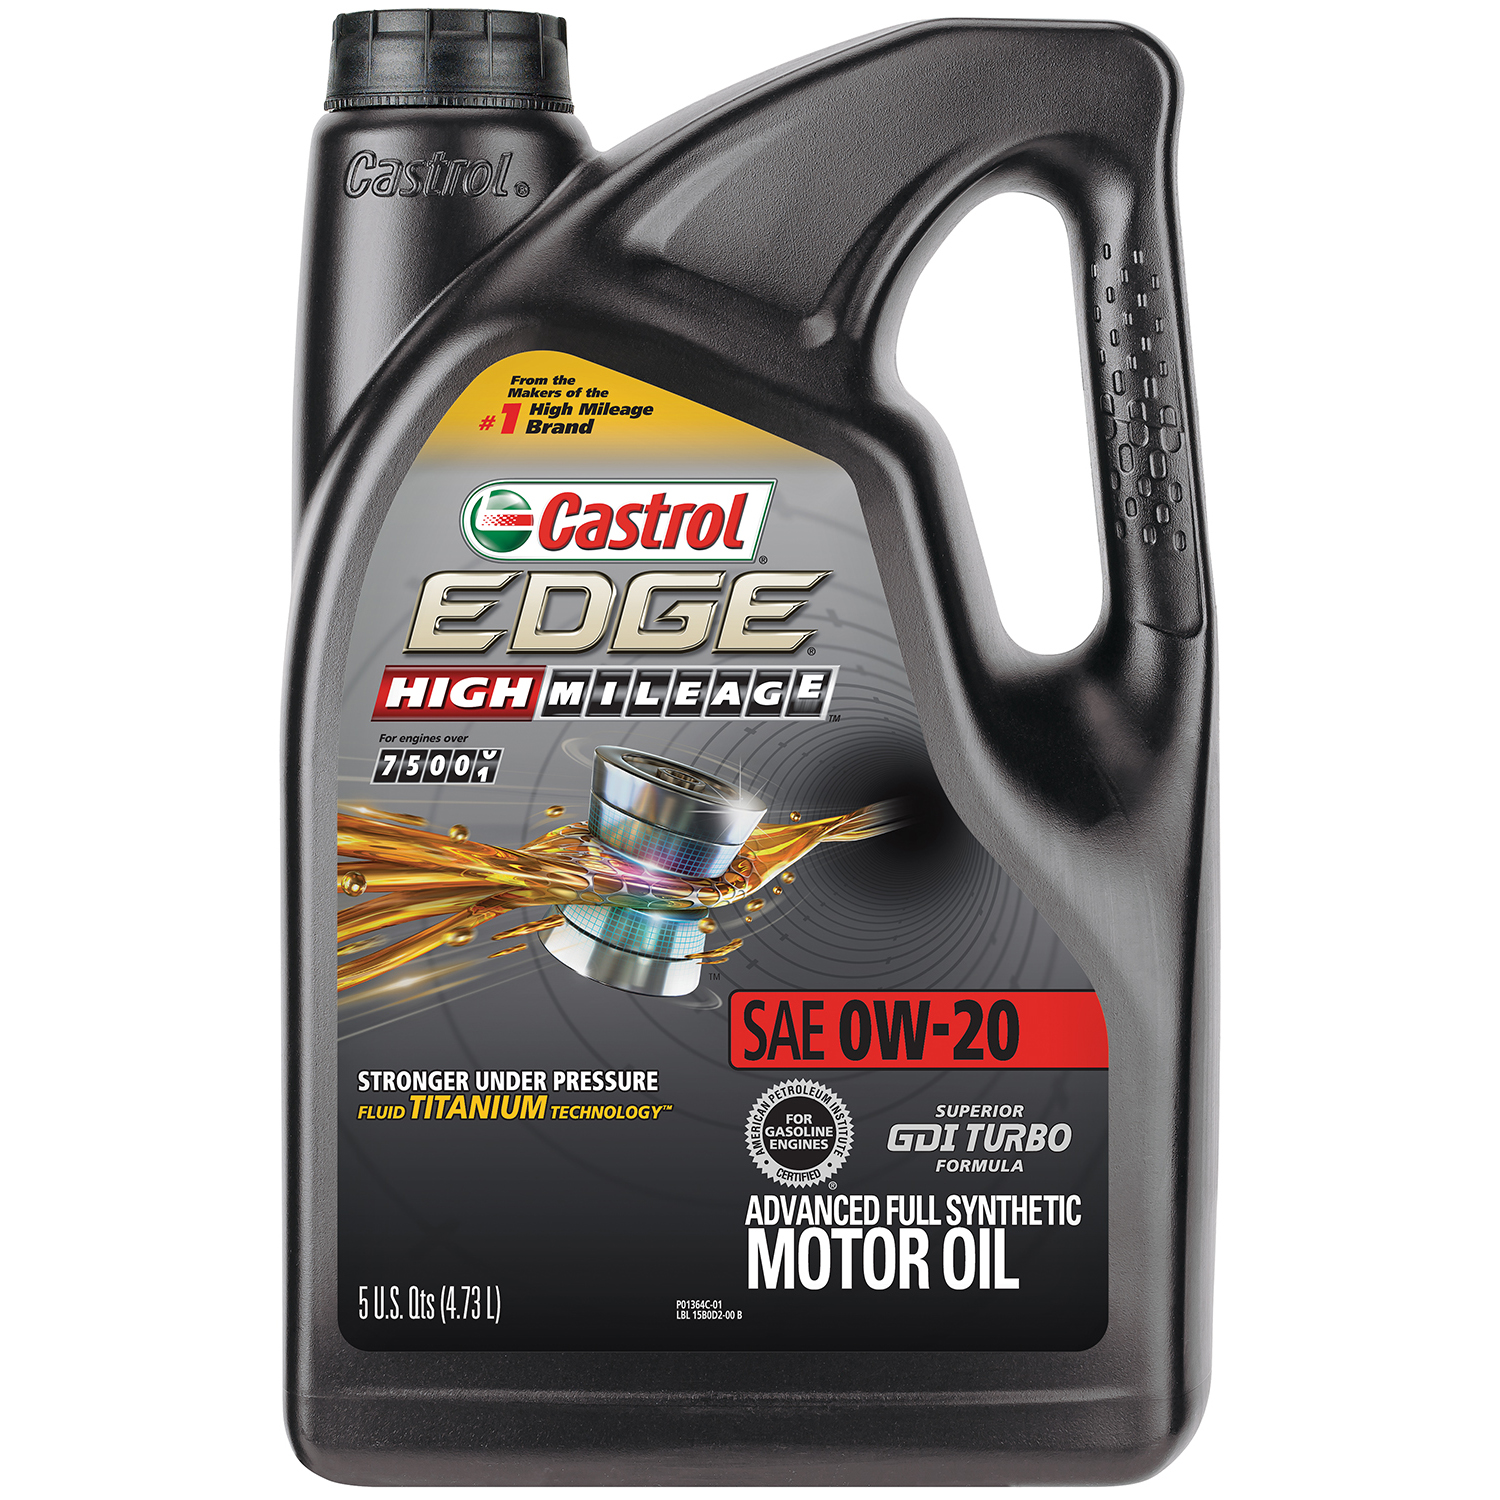 Castrol EDGE High Mileage 0W-20 Advanced Full Synthetic Motor Oil, 5 QT